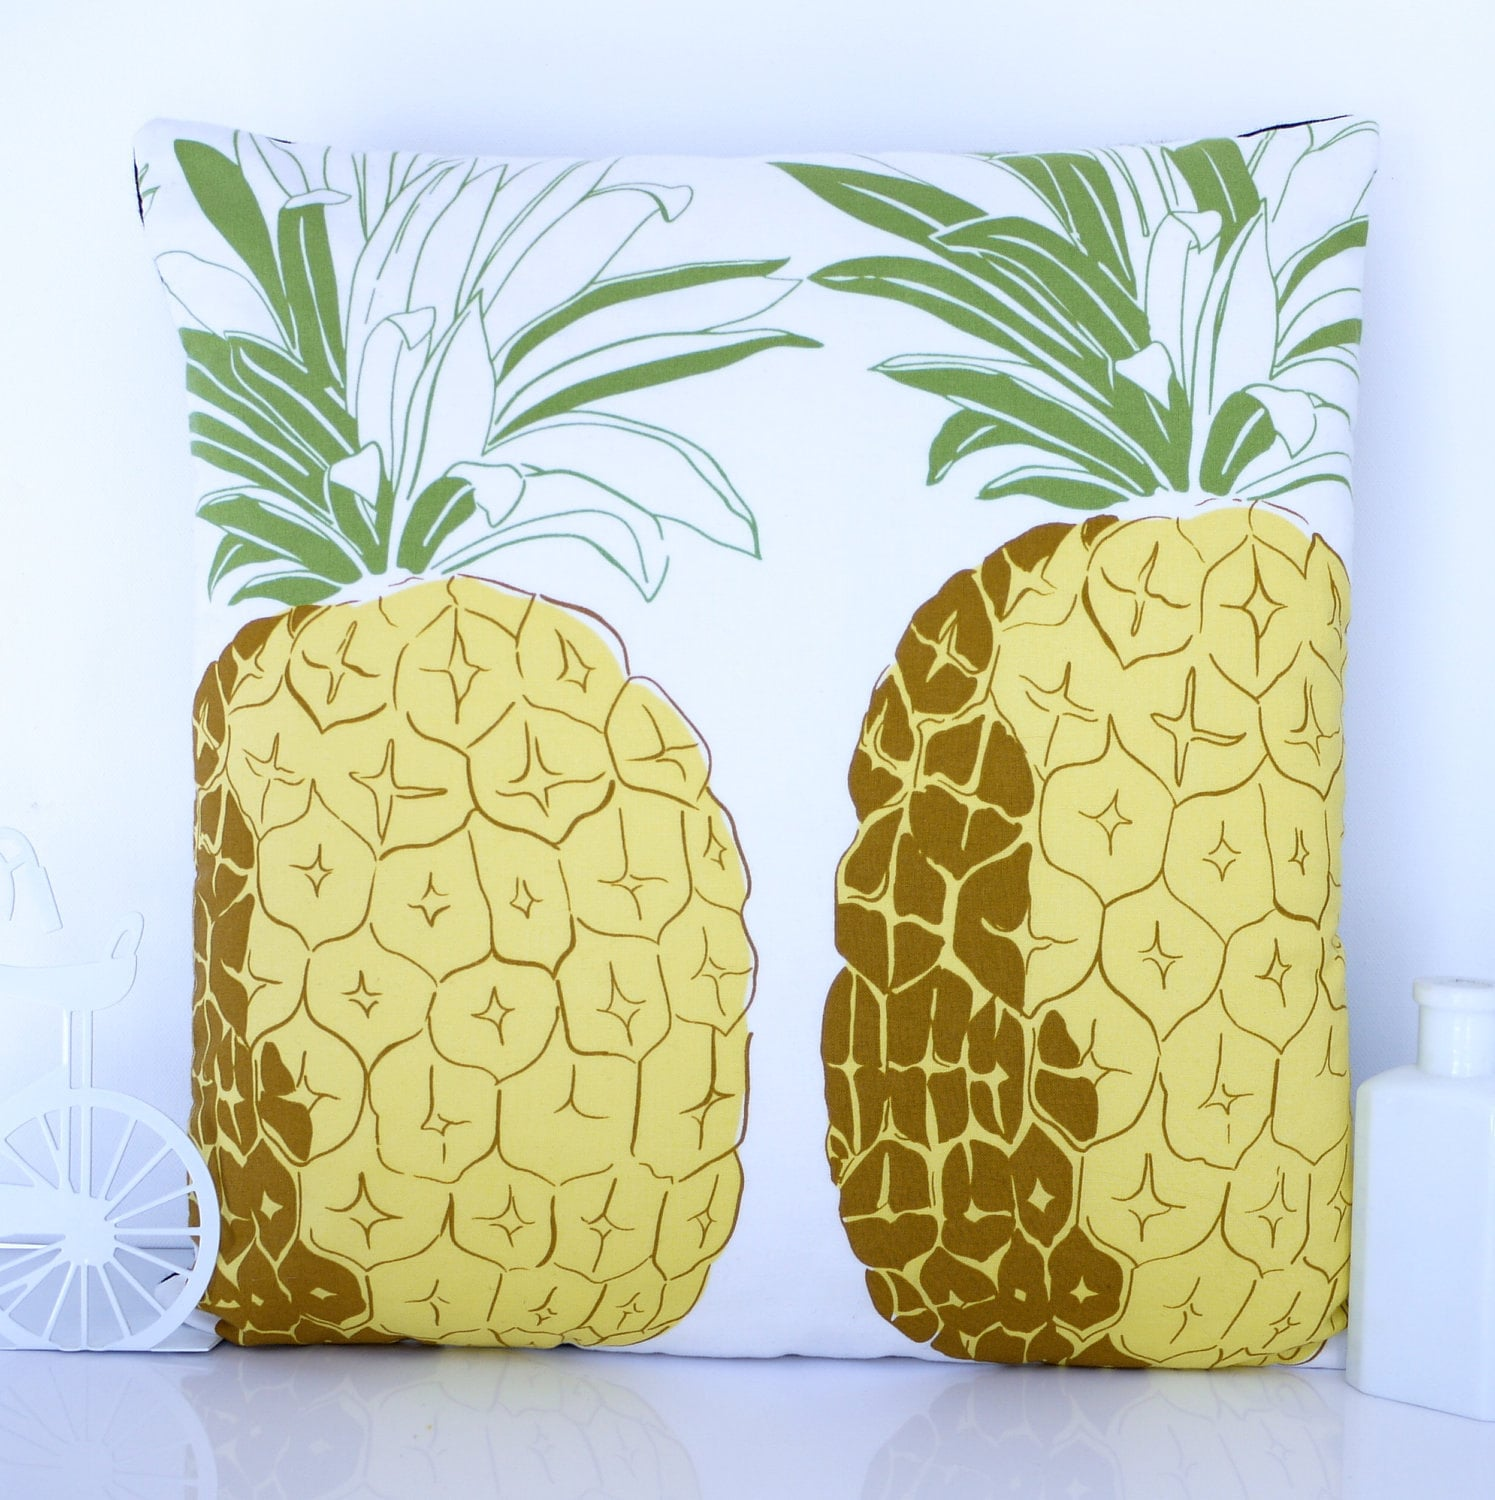 Pineapple cushion cover pineapple pillow by HenriettaAndMorty